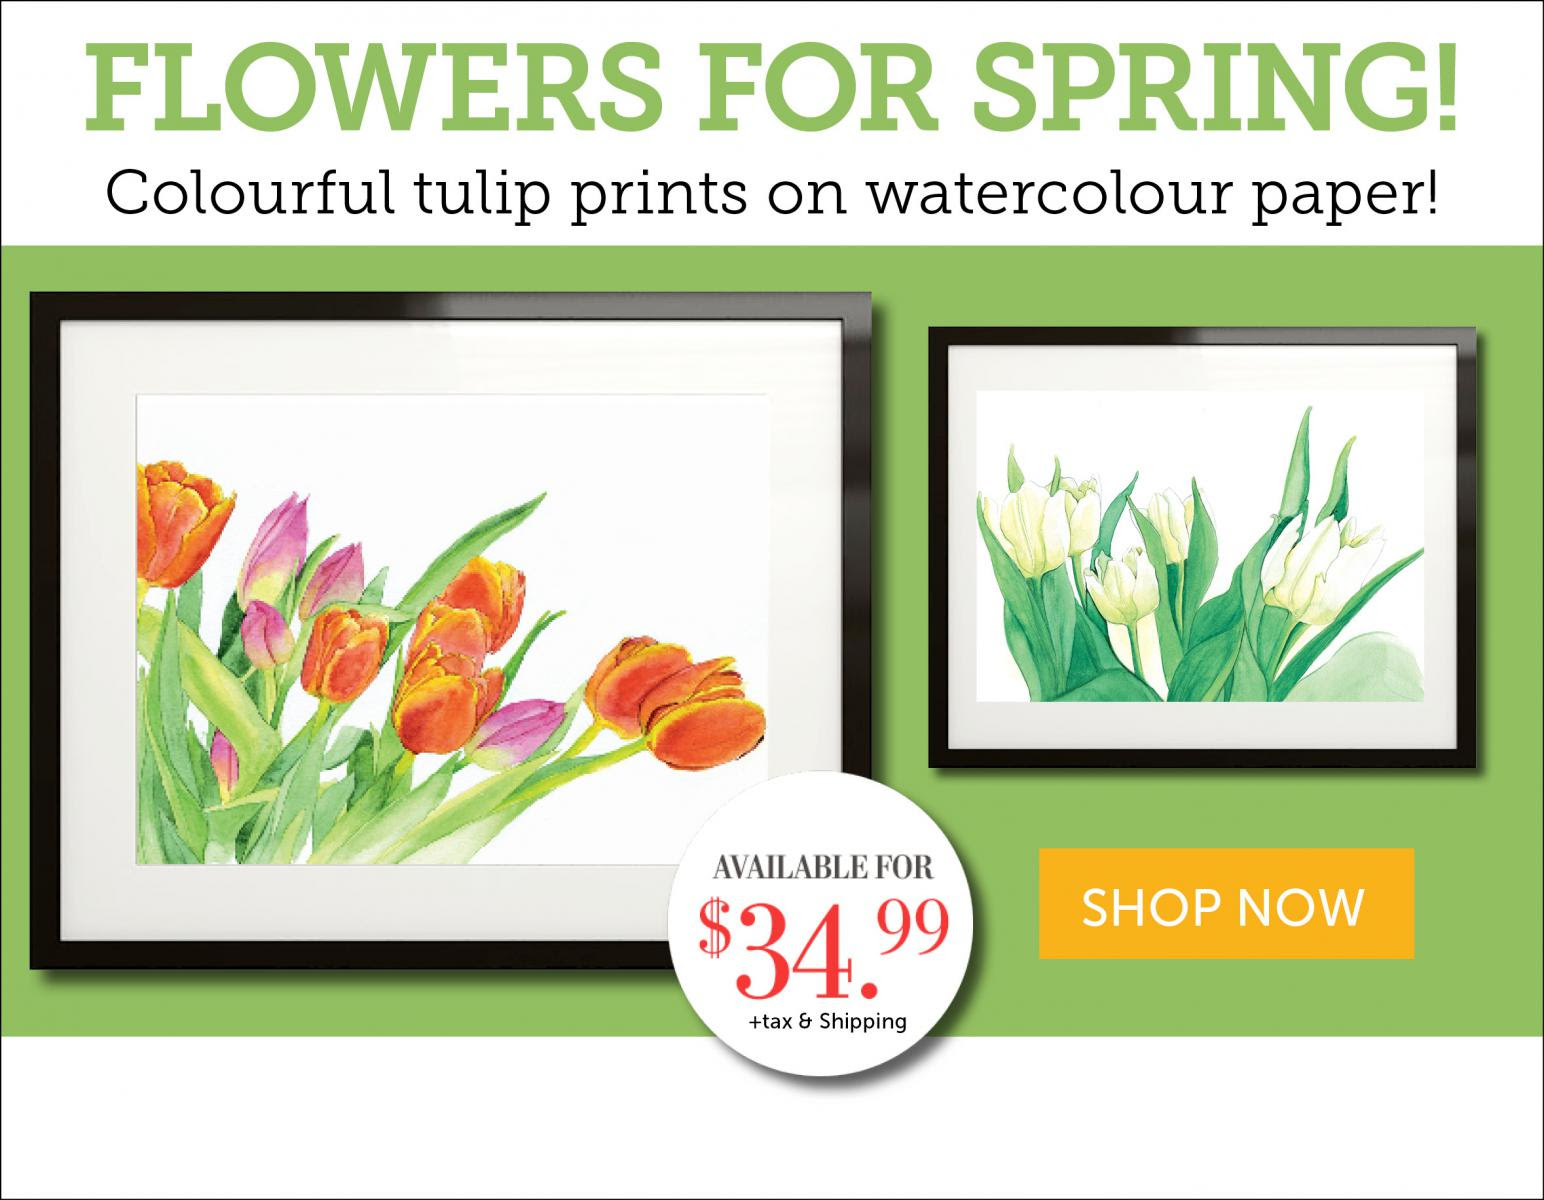 Flowers for Spring!